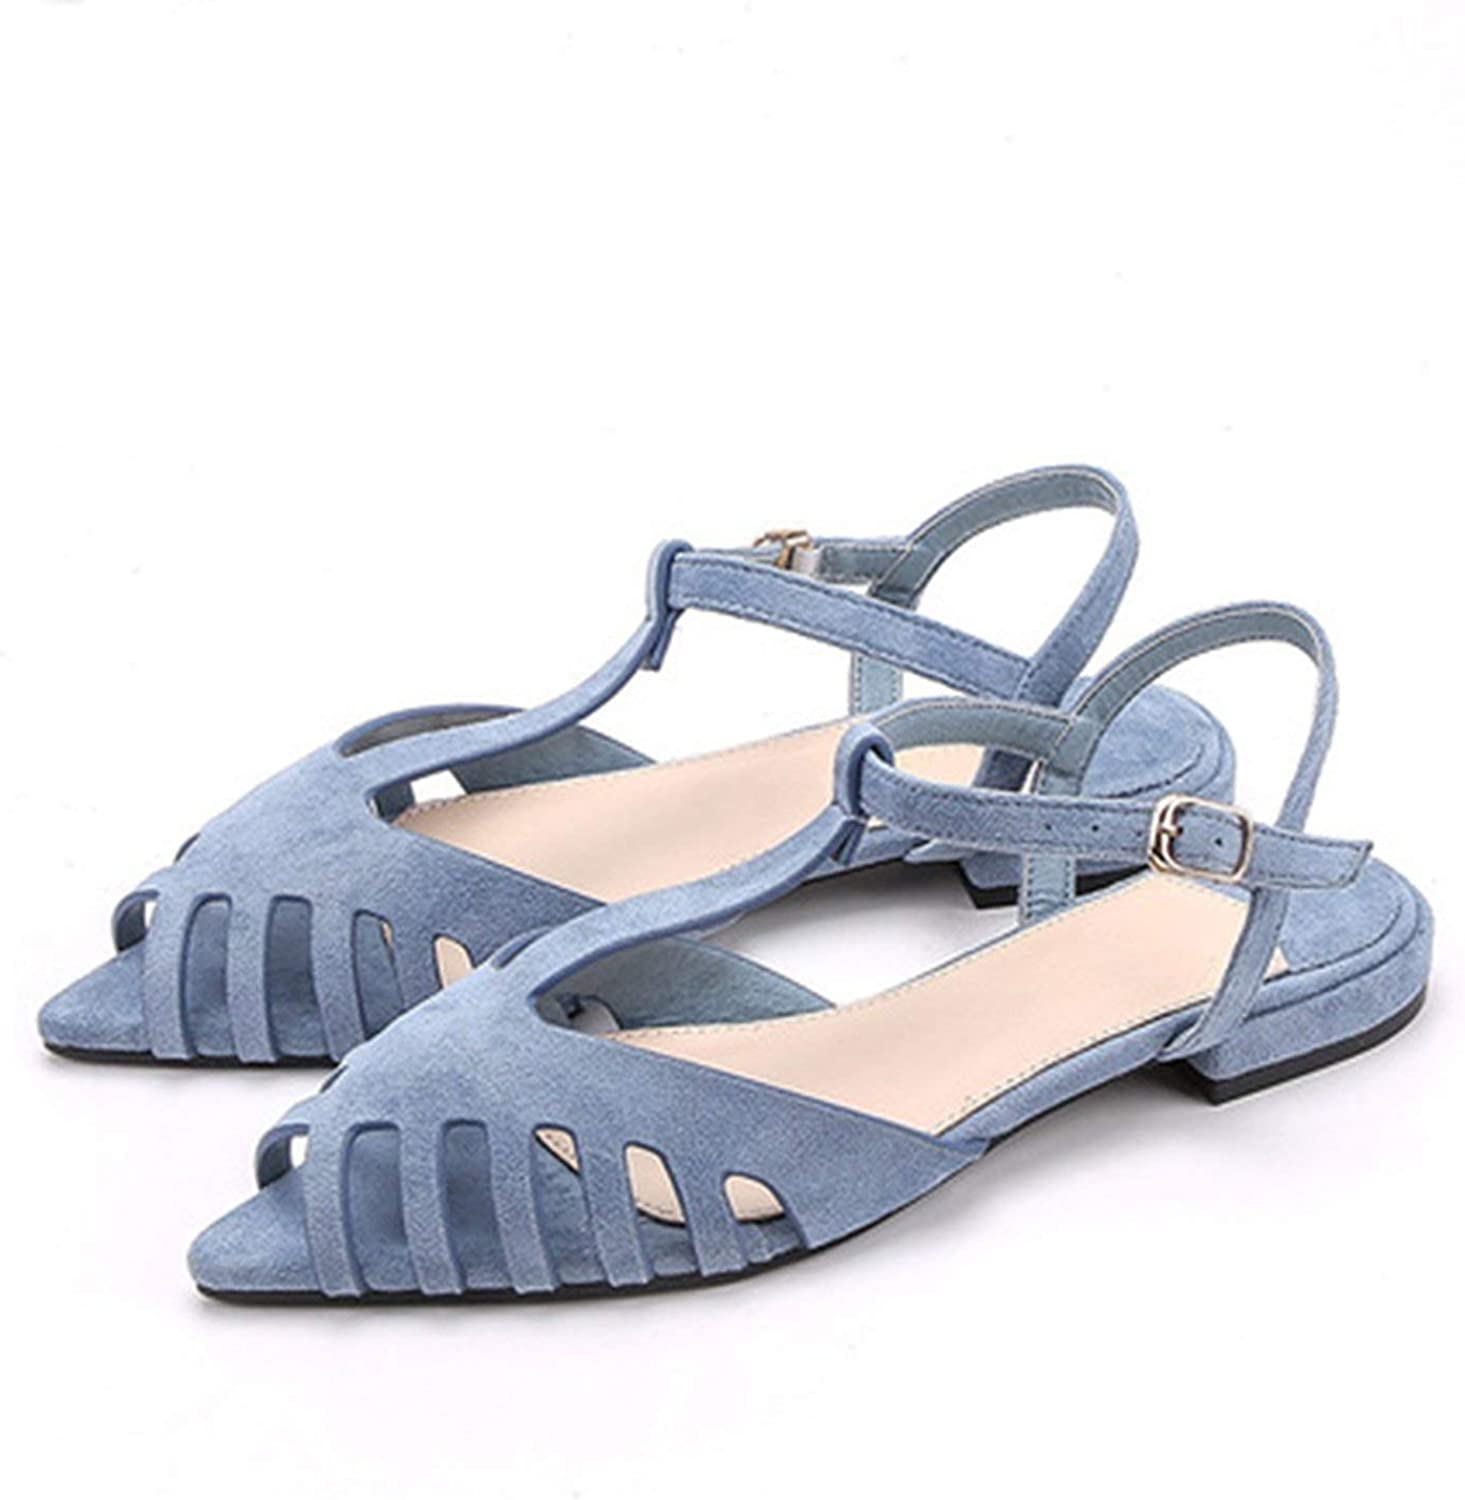 Cuts-Out Flat Sandals Women Pointed Toe Summer Beach Sandals Women Soft Summer Sandals